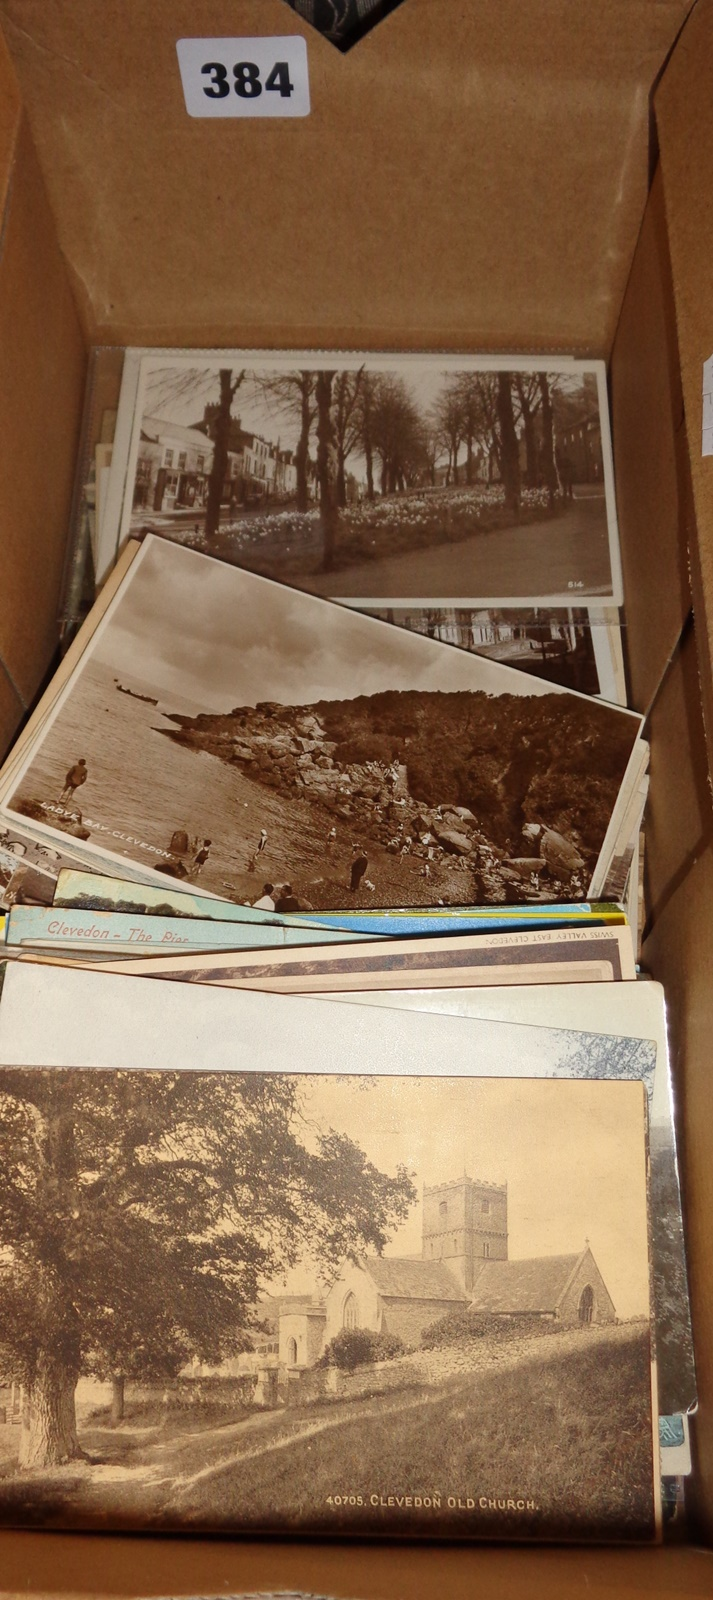 Lot 384 - Box containing old and vintage postcards, mainly scenes of Clevedon, Somerset